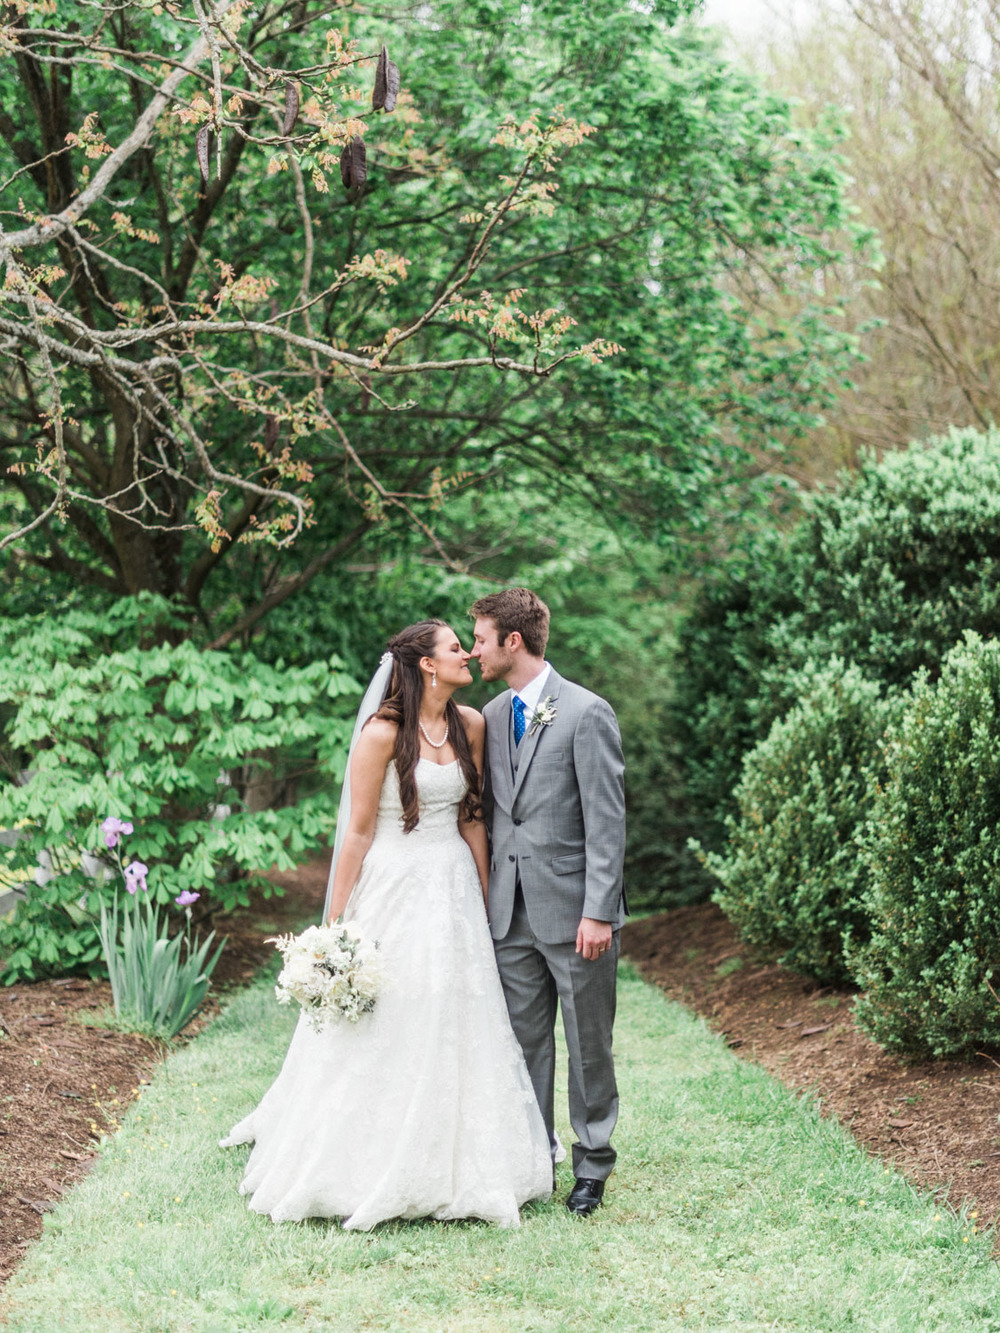 Tuckahoe_Plantation_Lynchburg_Richmond_ Virginia_Charlottesville_Wedding_Photographer-1.jpg